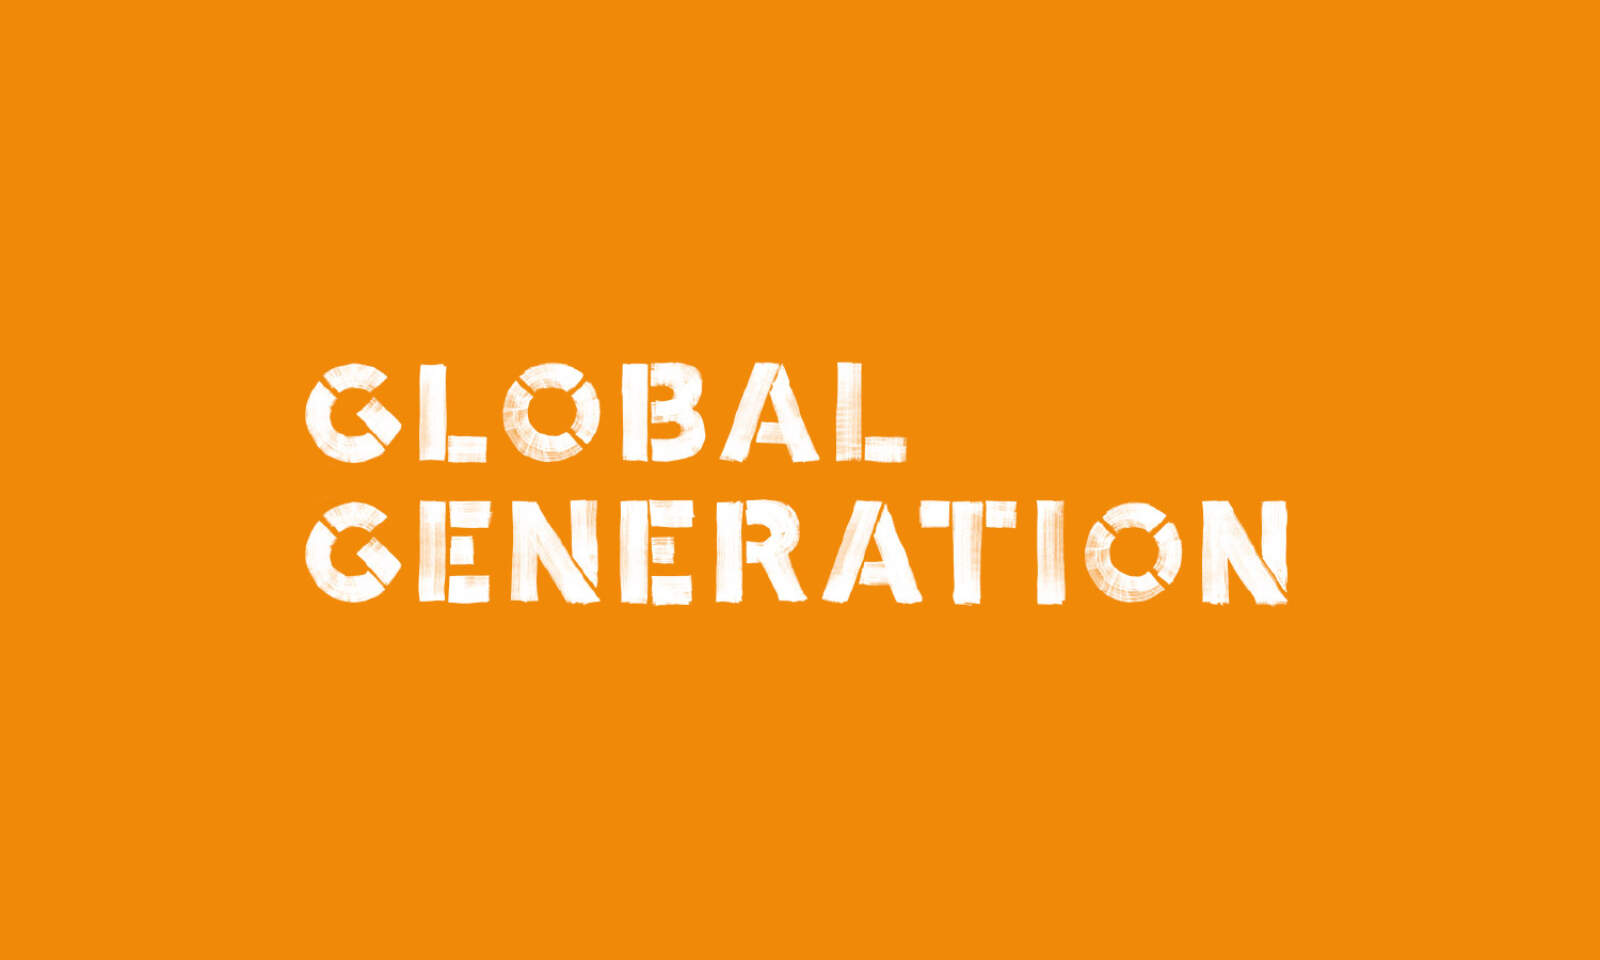 Global Generation logotype, white on orange.